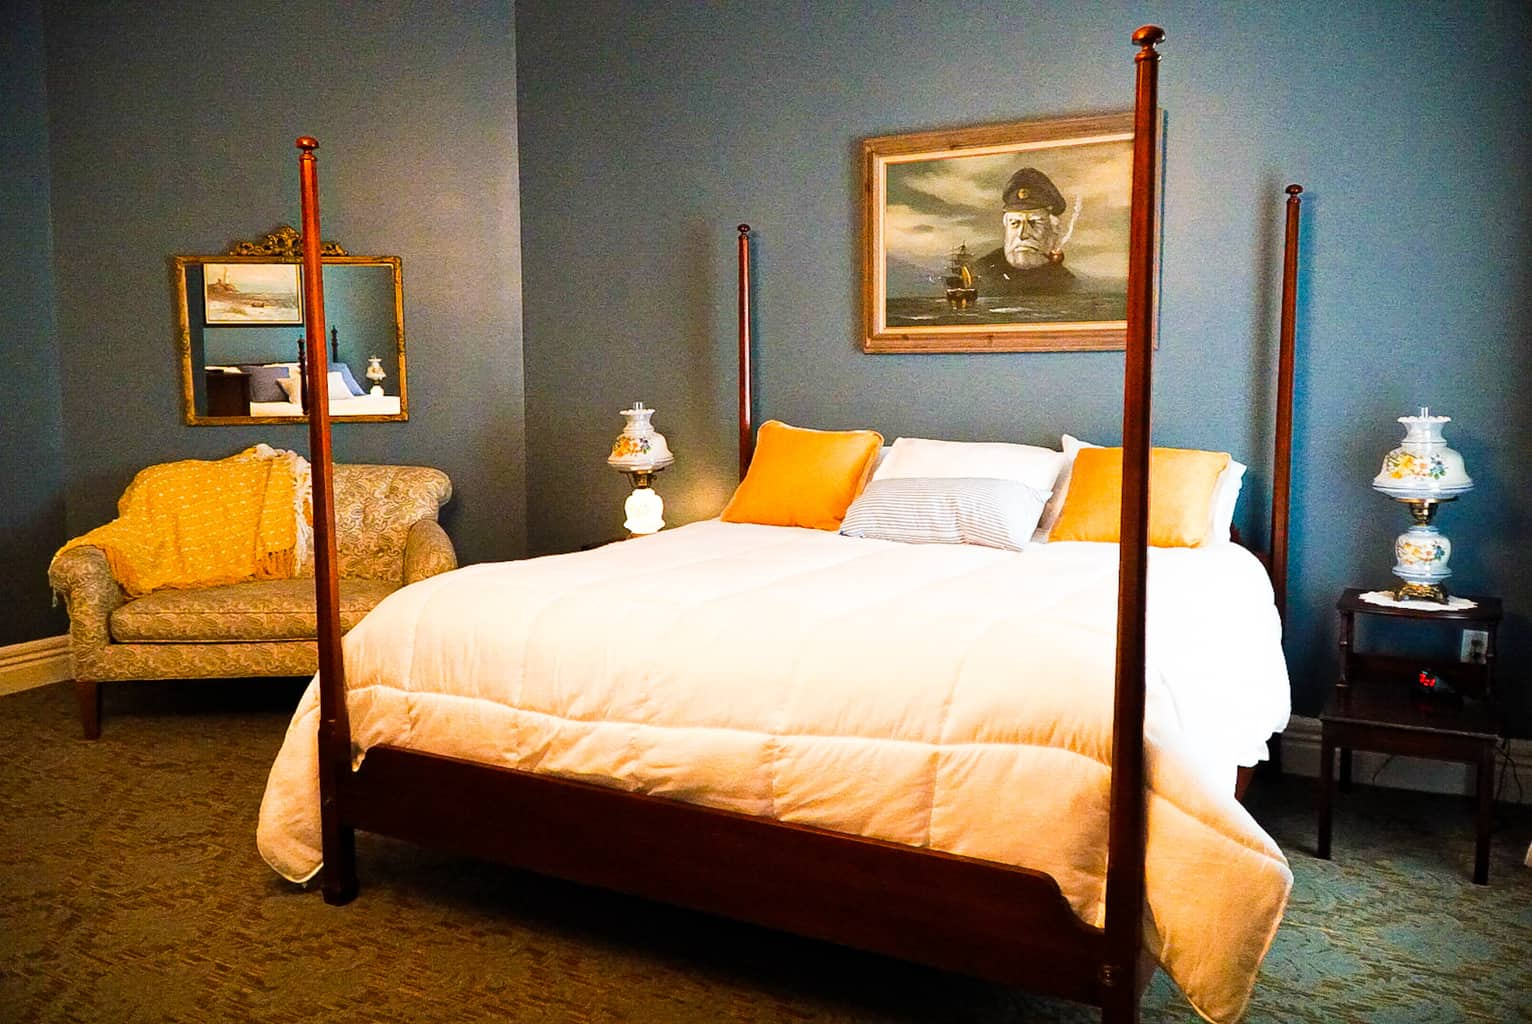 One of the beds inside the Osborne Room of the Historic Hotel Broadalbin.